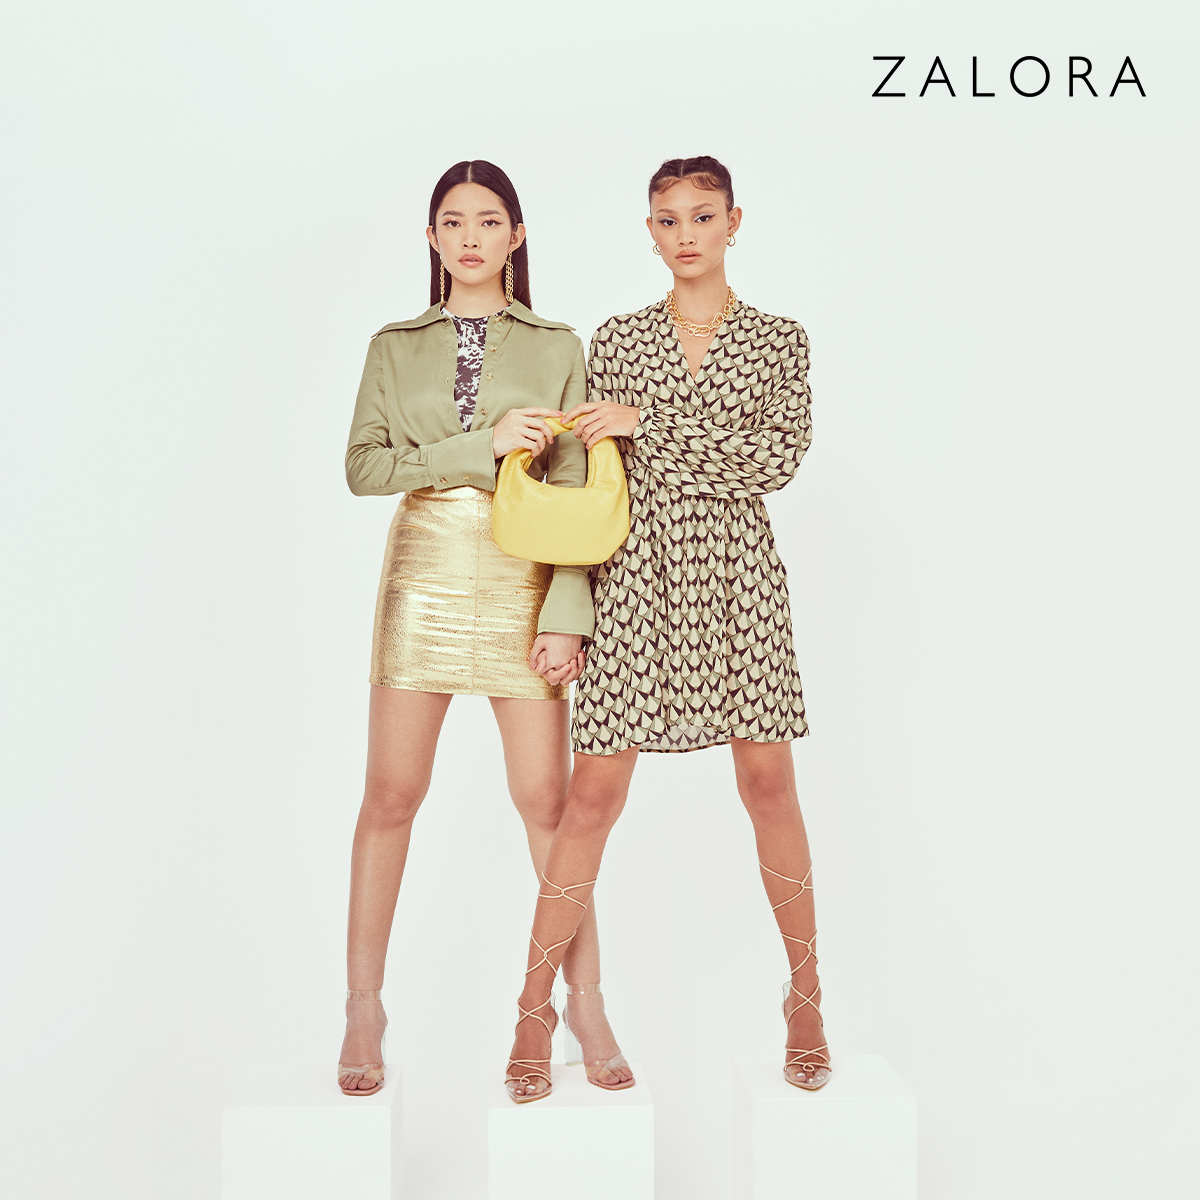 Zalora - Up To 20% Off Purchases + 3% Cashback